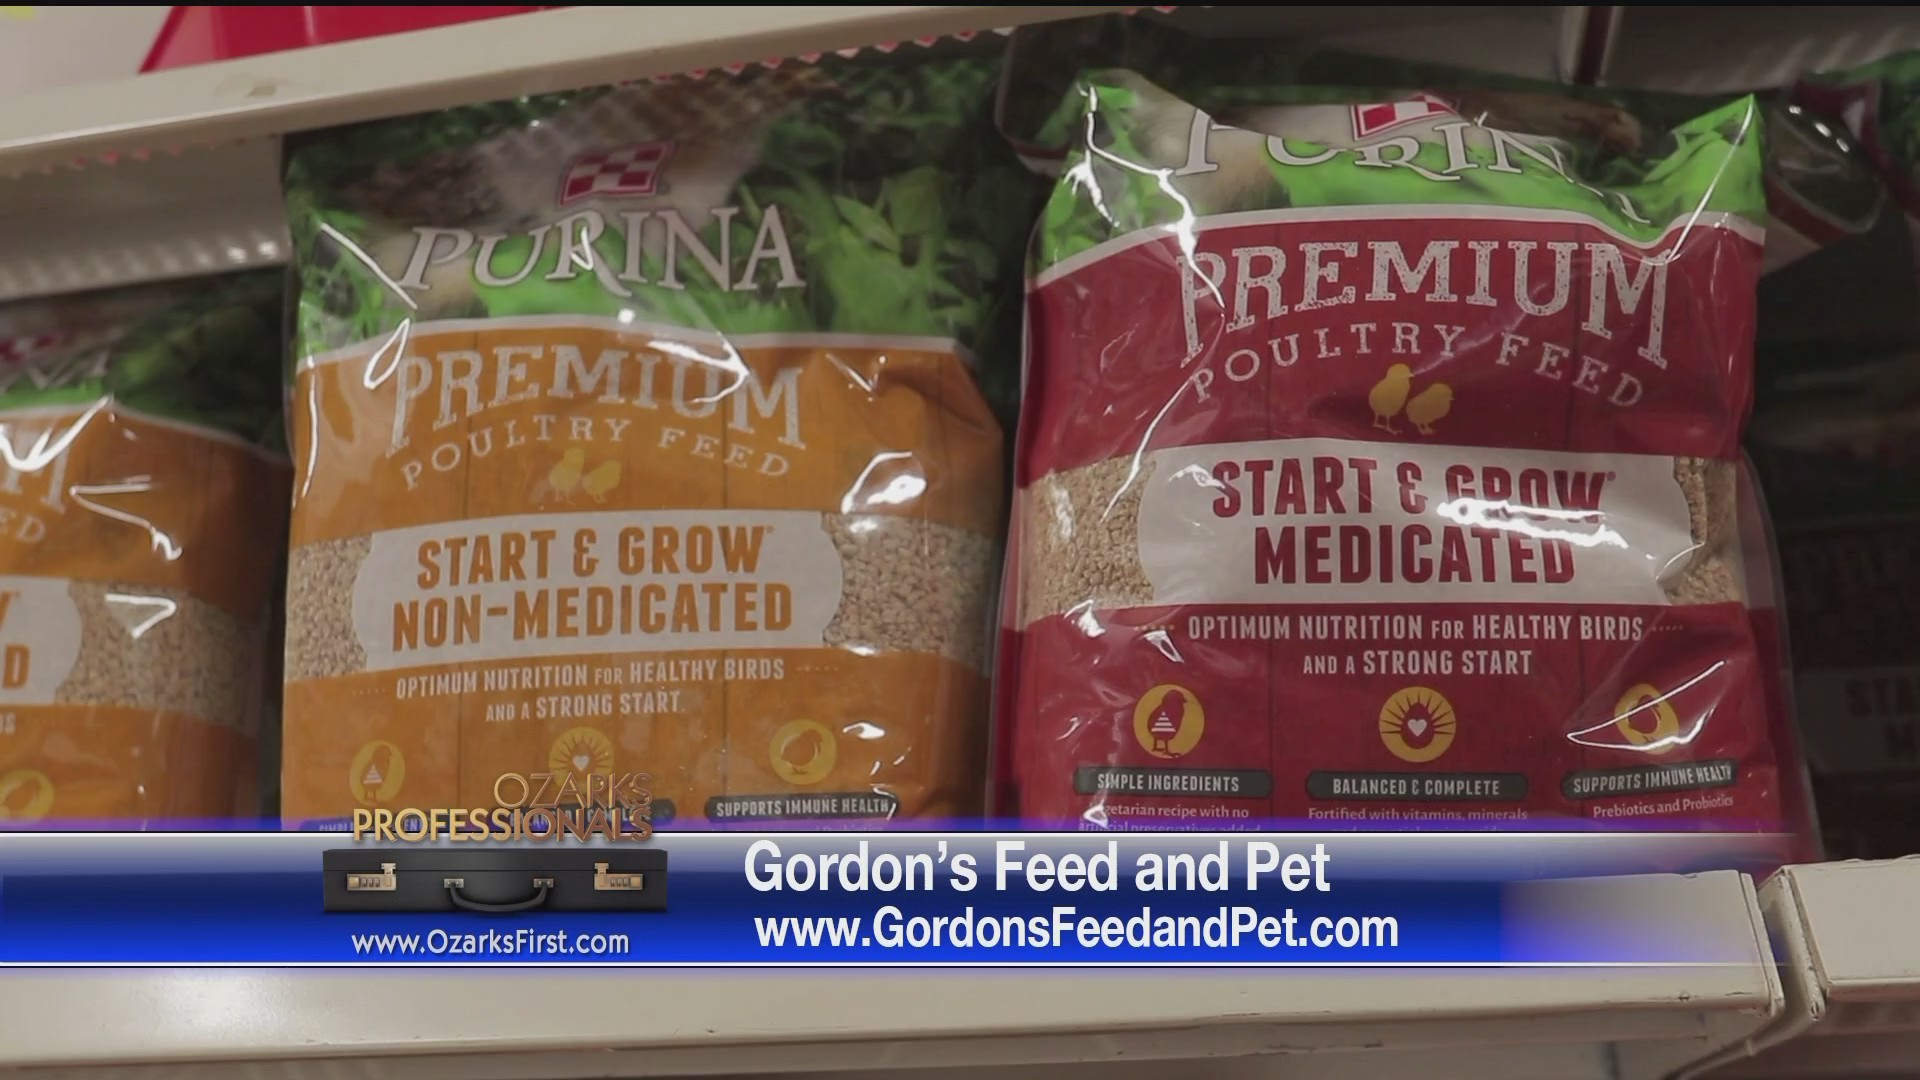 Gordon's Feed and Pet - 5/15/19